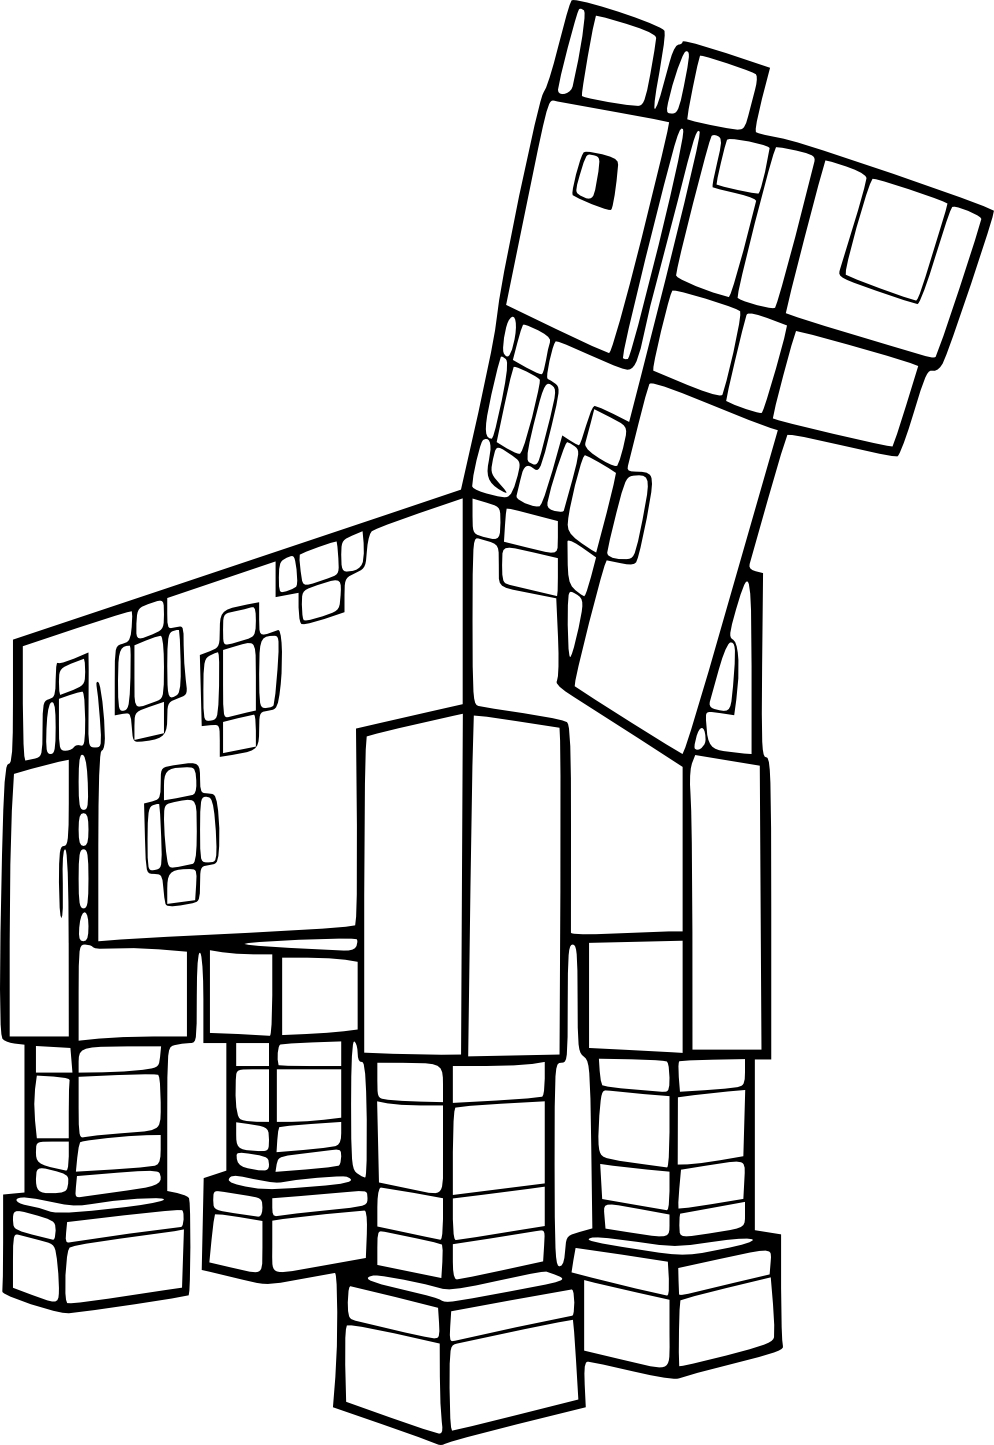 Horseland Coloring Pages - Coloriage Coloriage Cheval De Minecraft à Imprimer Sur